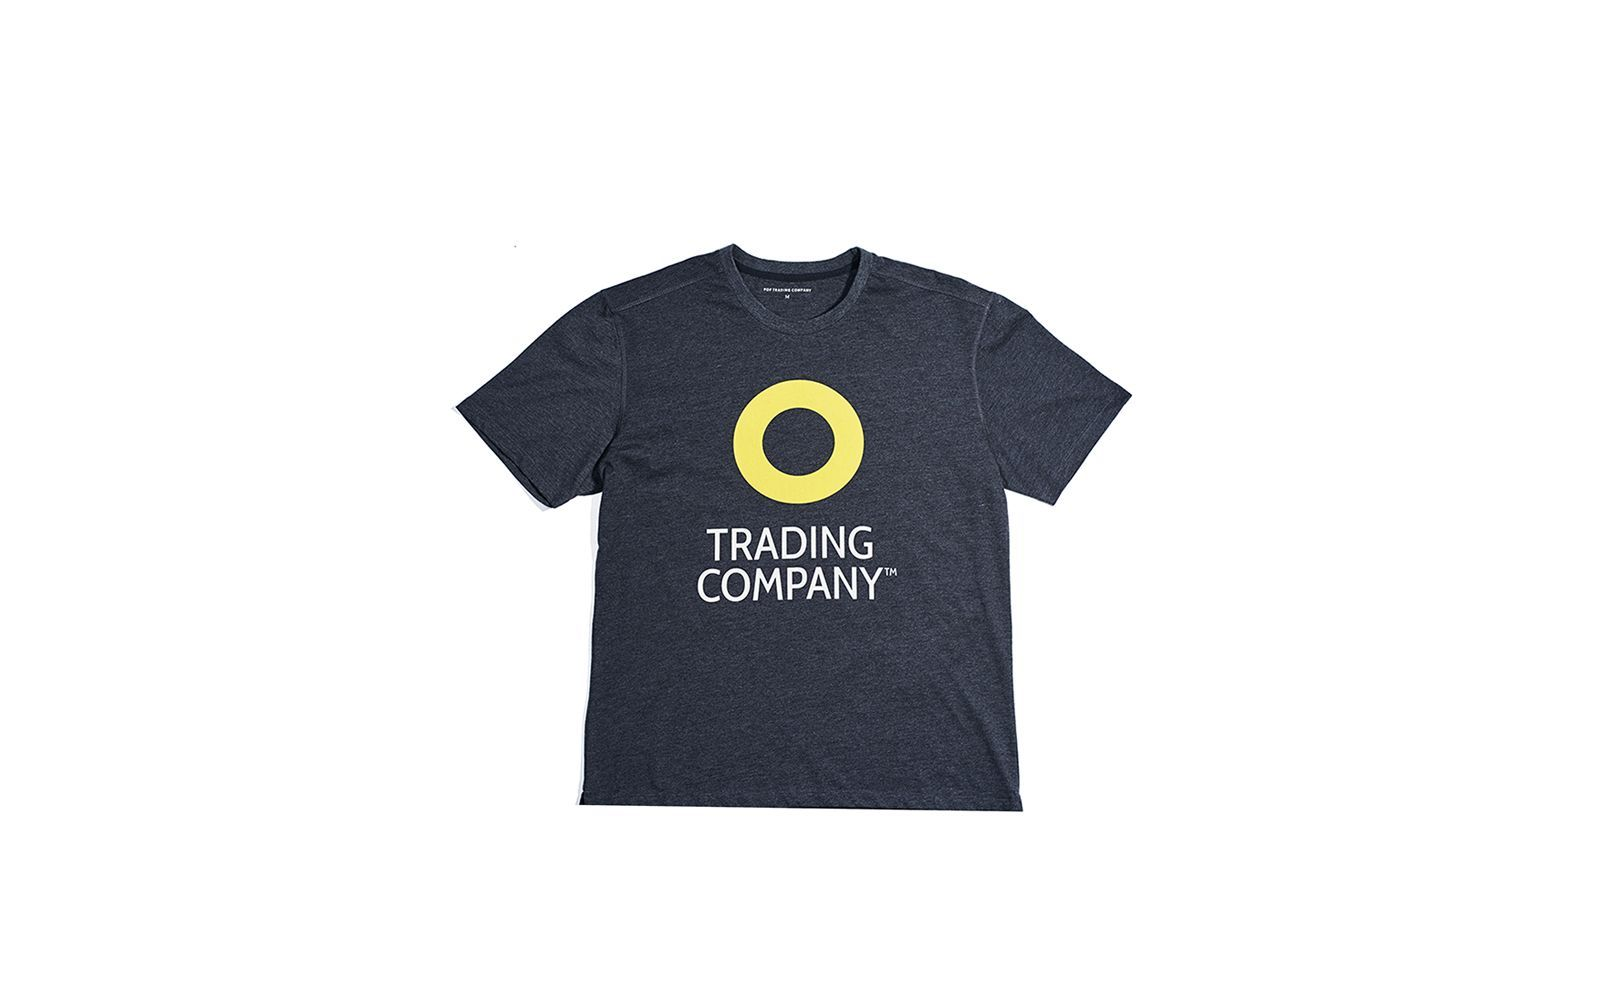 pop-trading-company-aw17-product-geo-t-shirt